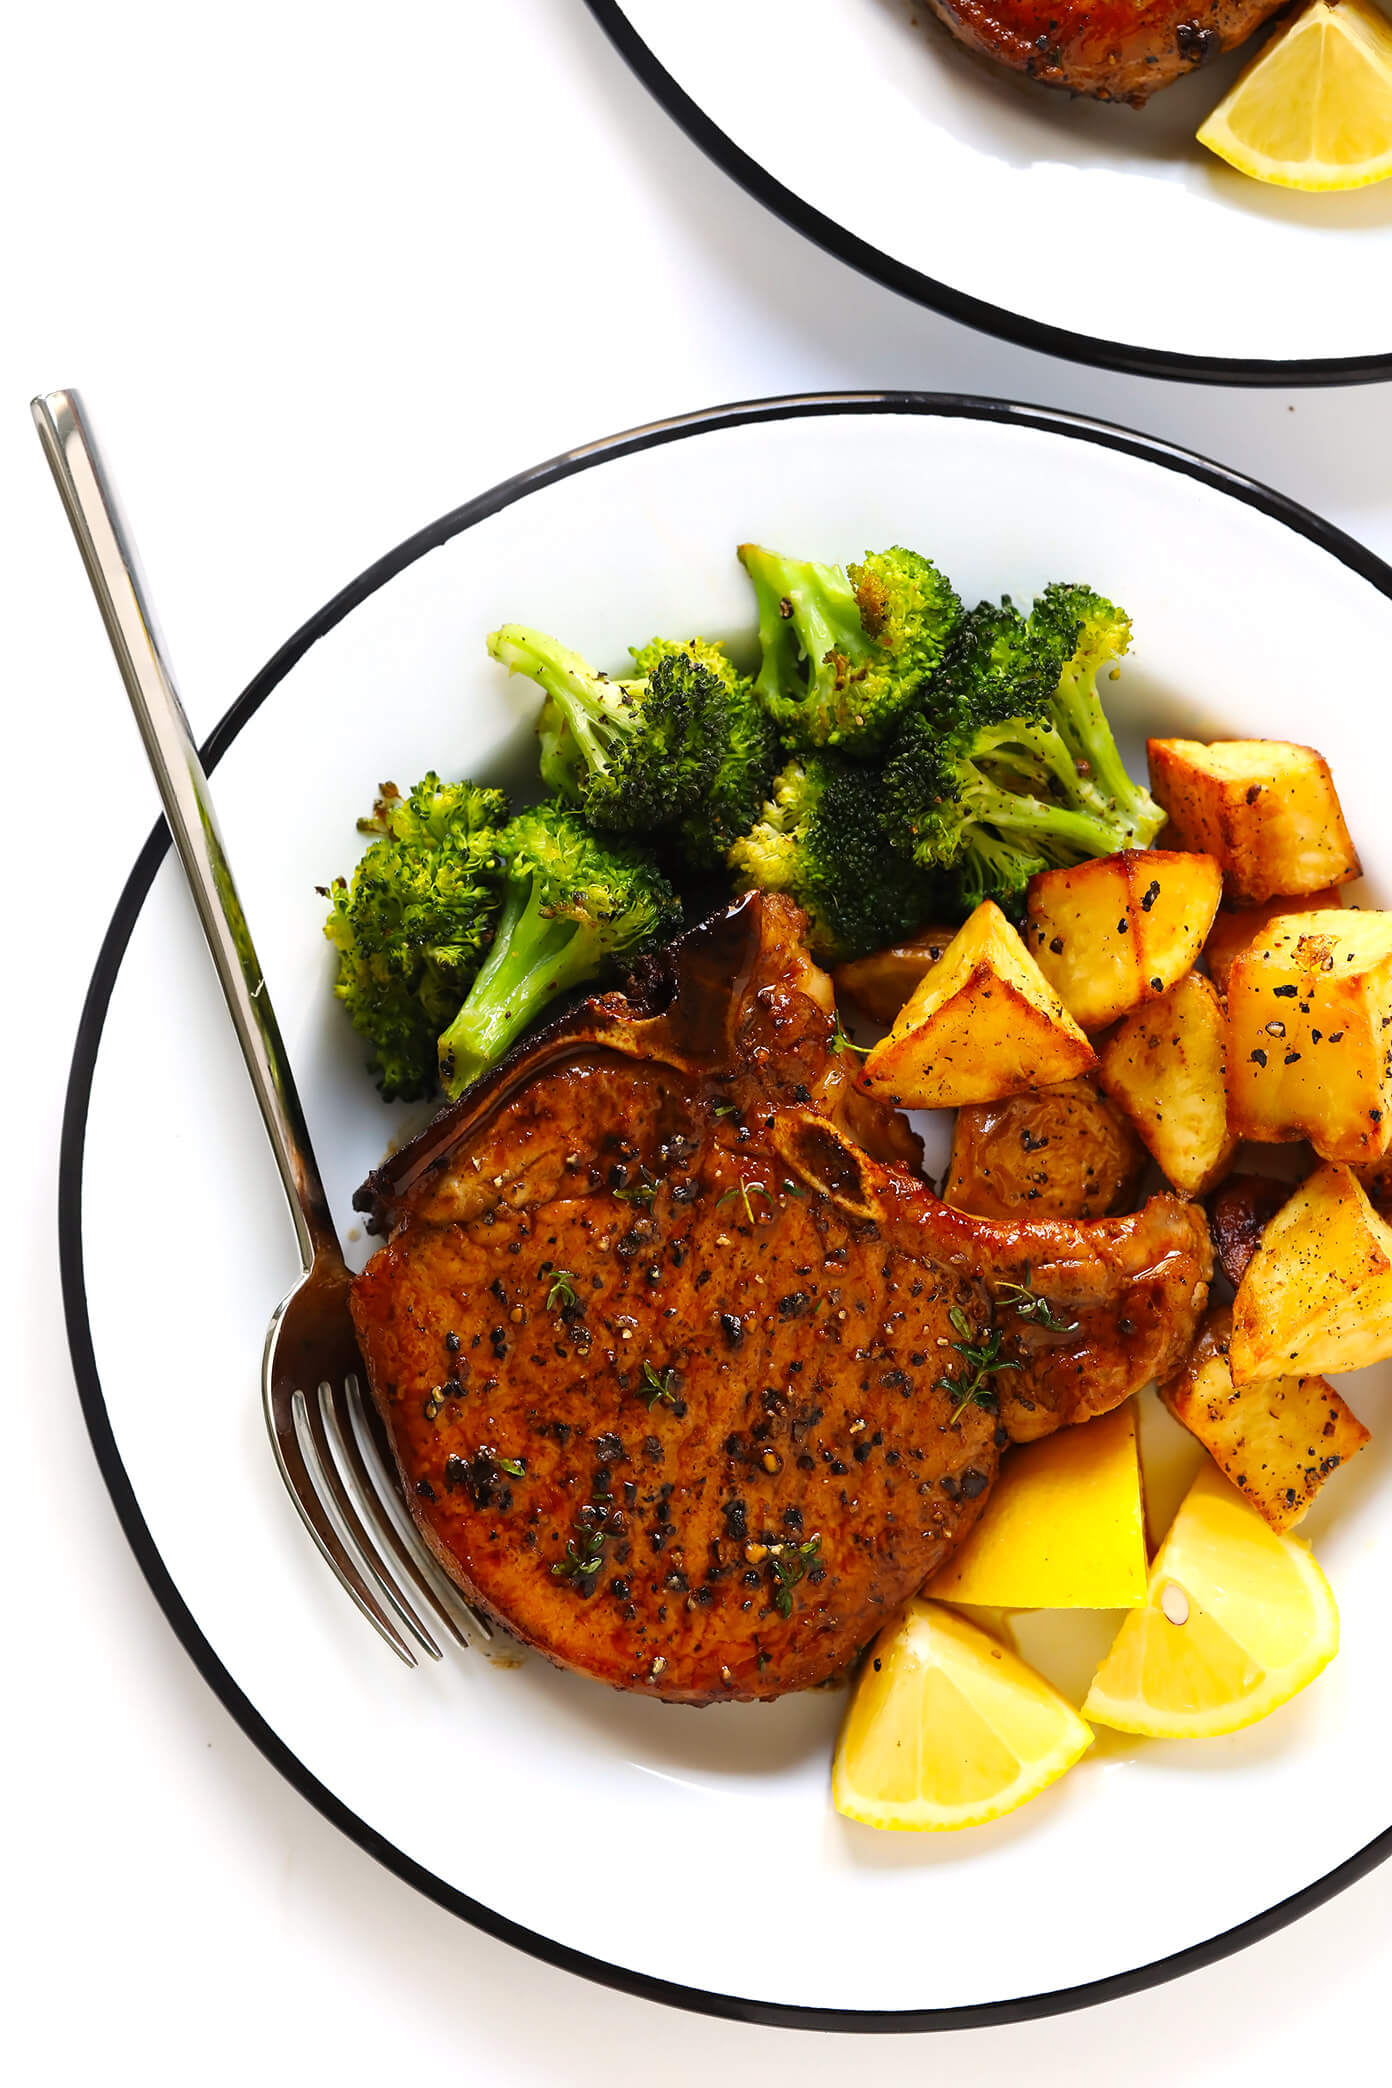 pork chops recipe baked oven easy dinner side dish juicy tender quick perfectly inside